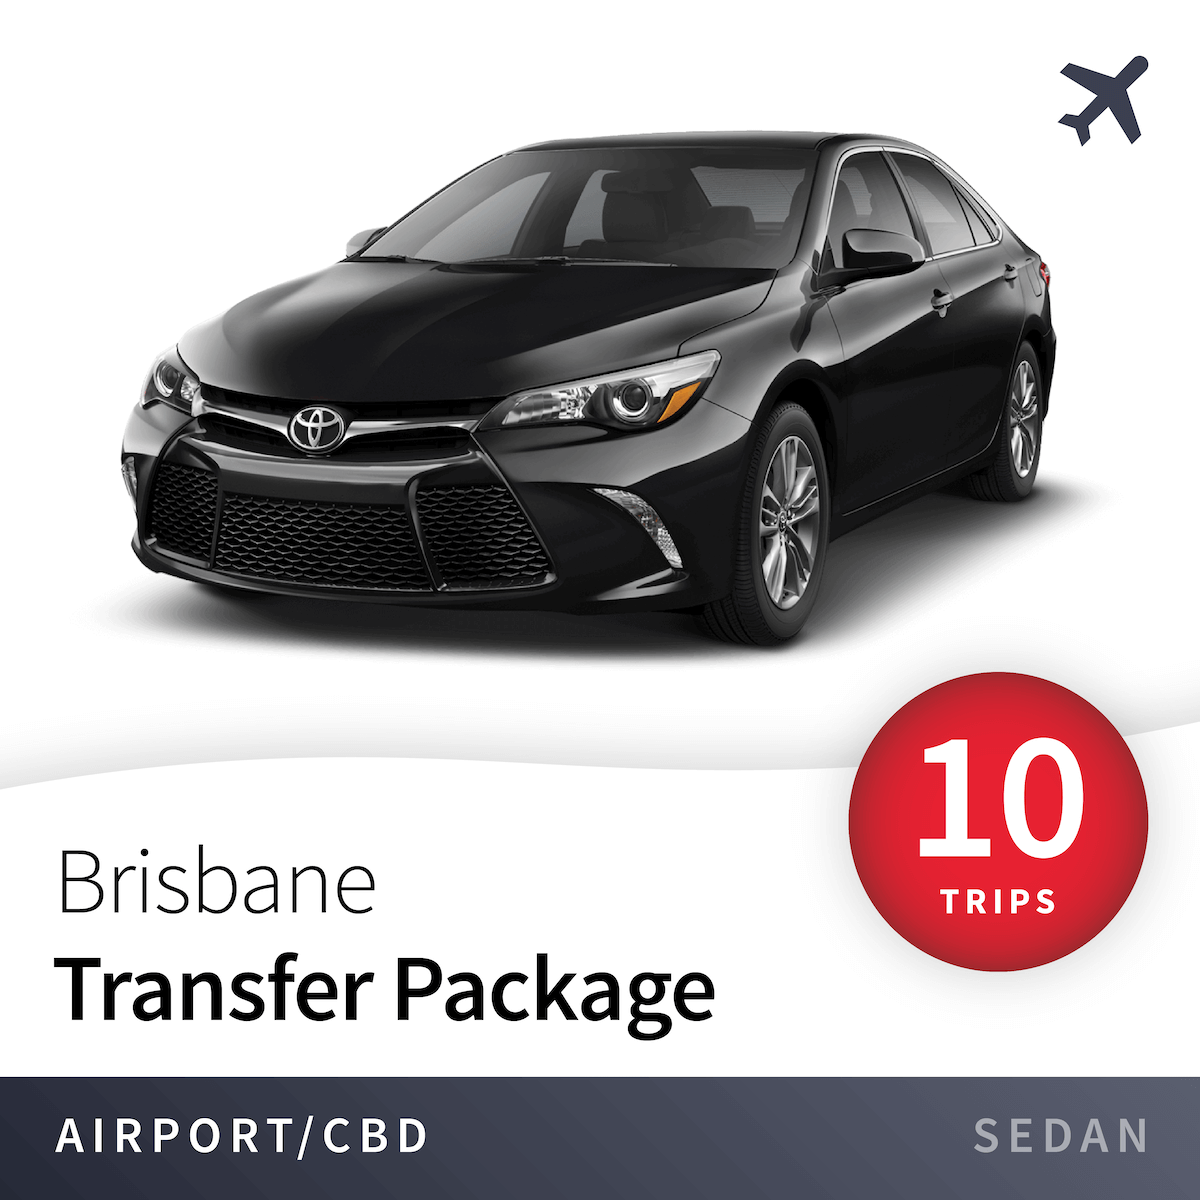 Brisbane Airport Transfer Package - Sedan (10 Trips) 1